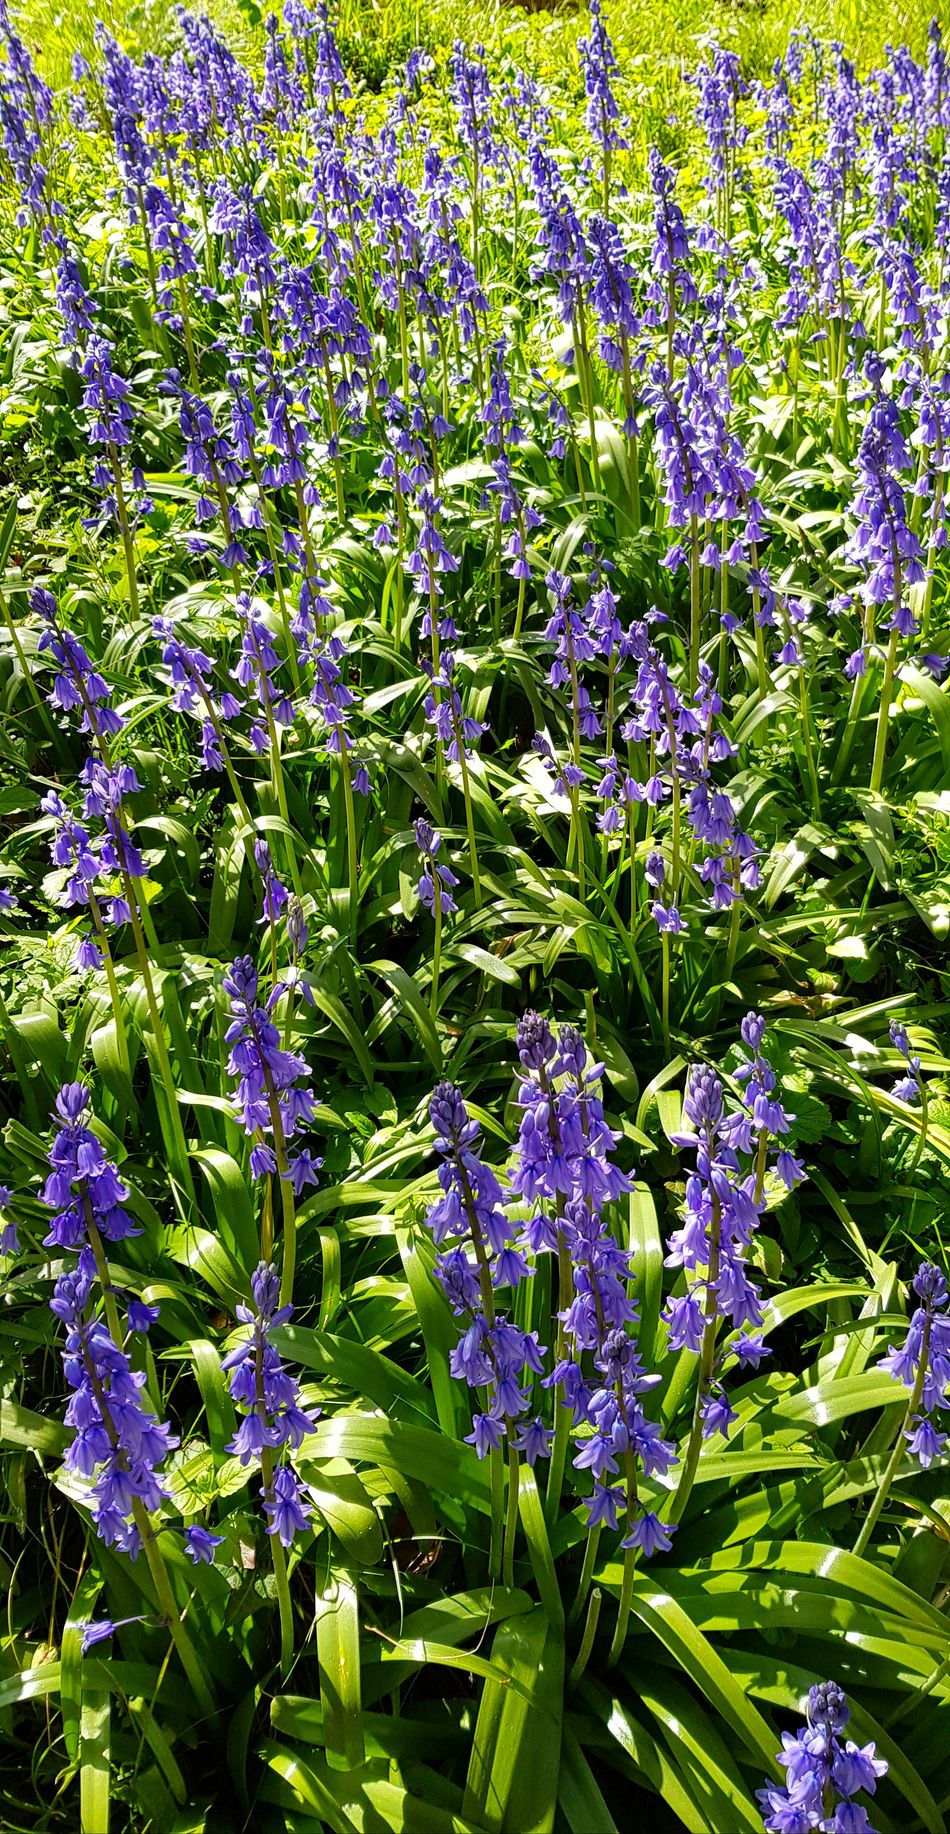 Bee Bluebells Bluebell Wood Springtime Spring Flowers Spring Flower Beauty In Nature Growth Nature Plant Day Purple Fragility Freshness Field Backgrounds Outdoors No PeopleGreen Color Full Frame Blooming Close-up Flower Head Flowers Nationaltrust Yoga Art Is Everywhere